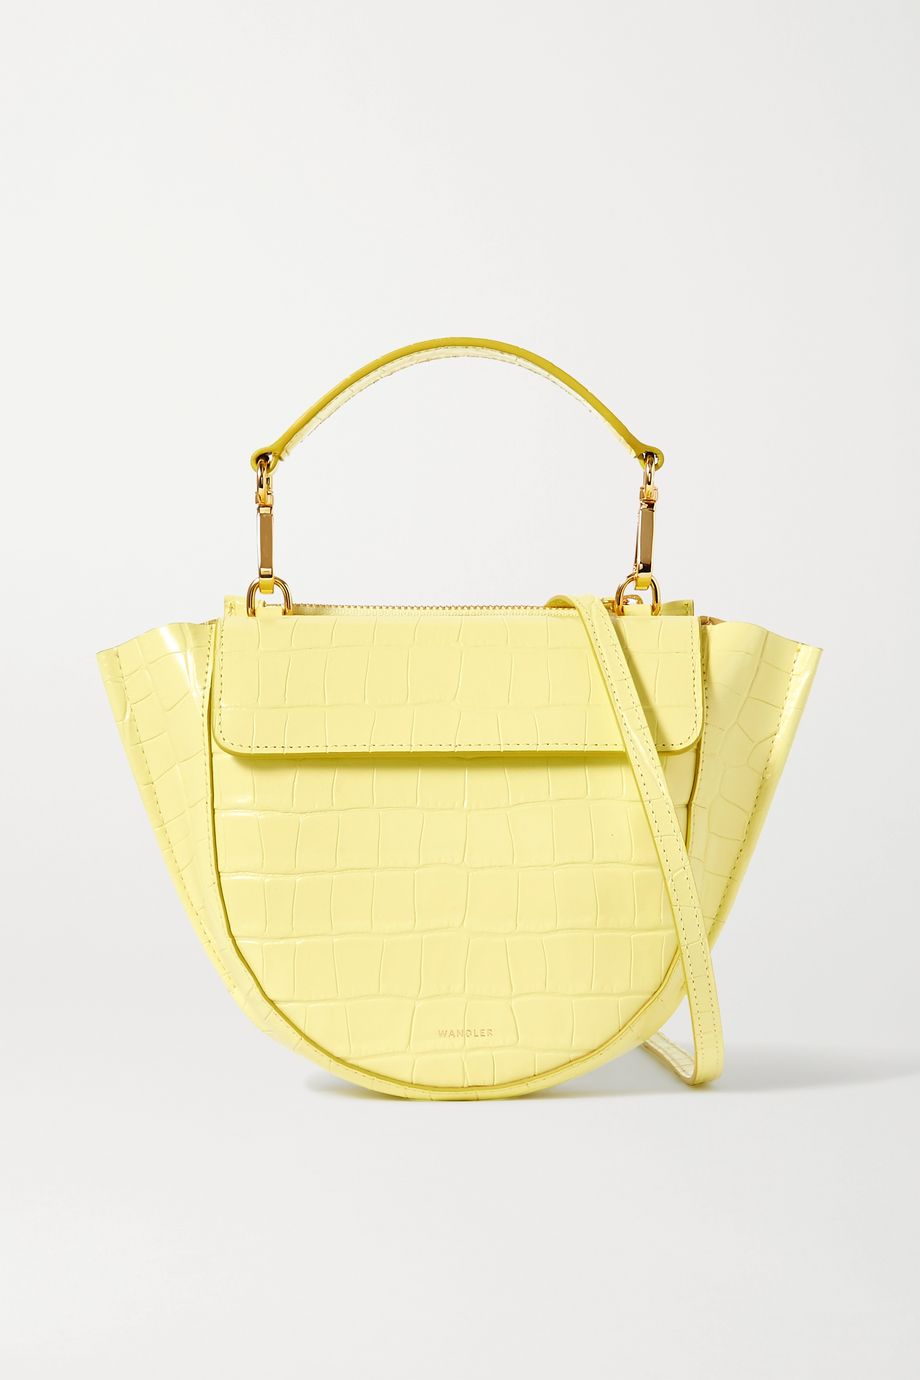 Wandler Hortensia mini croc-effect leather shoulder bag